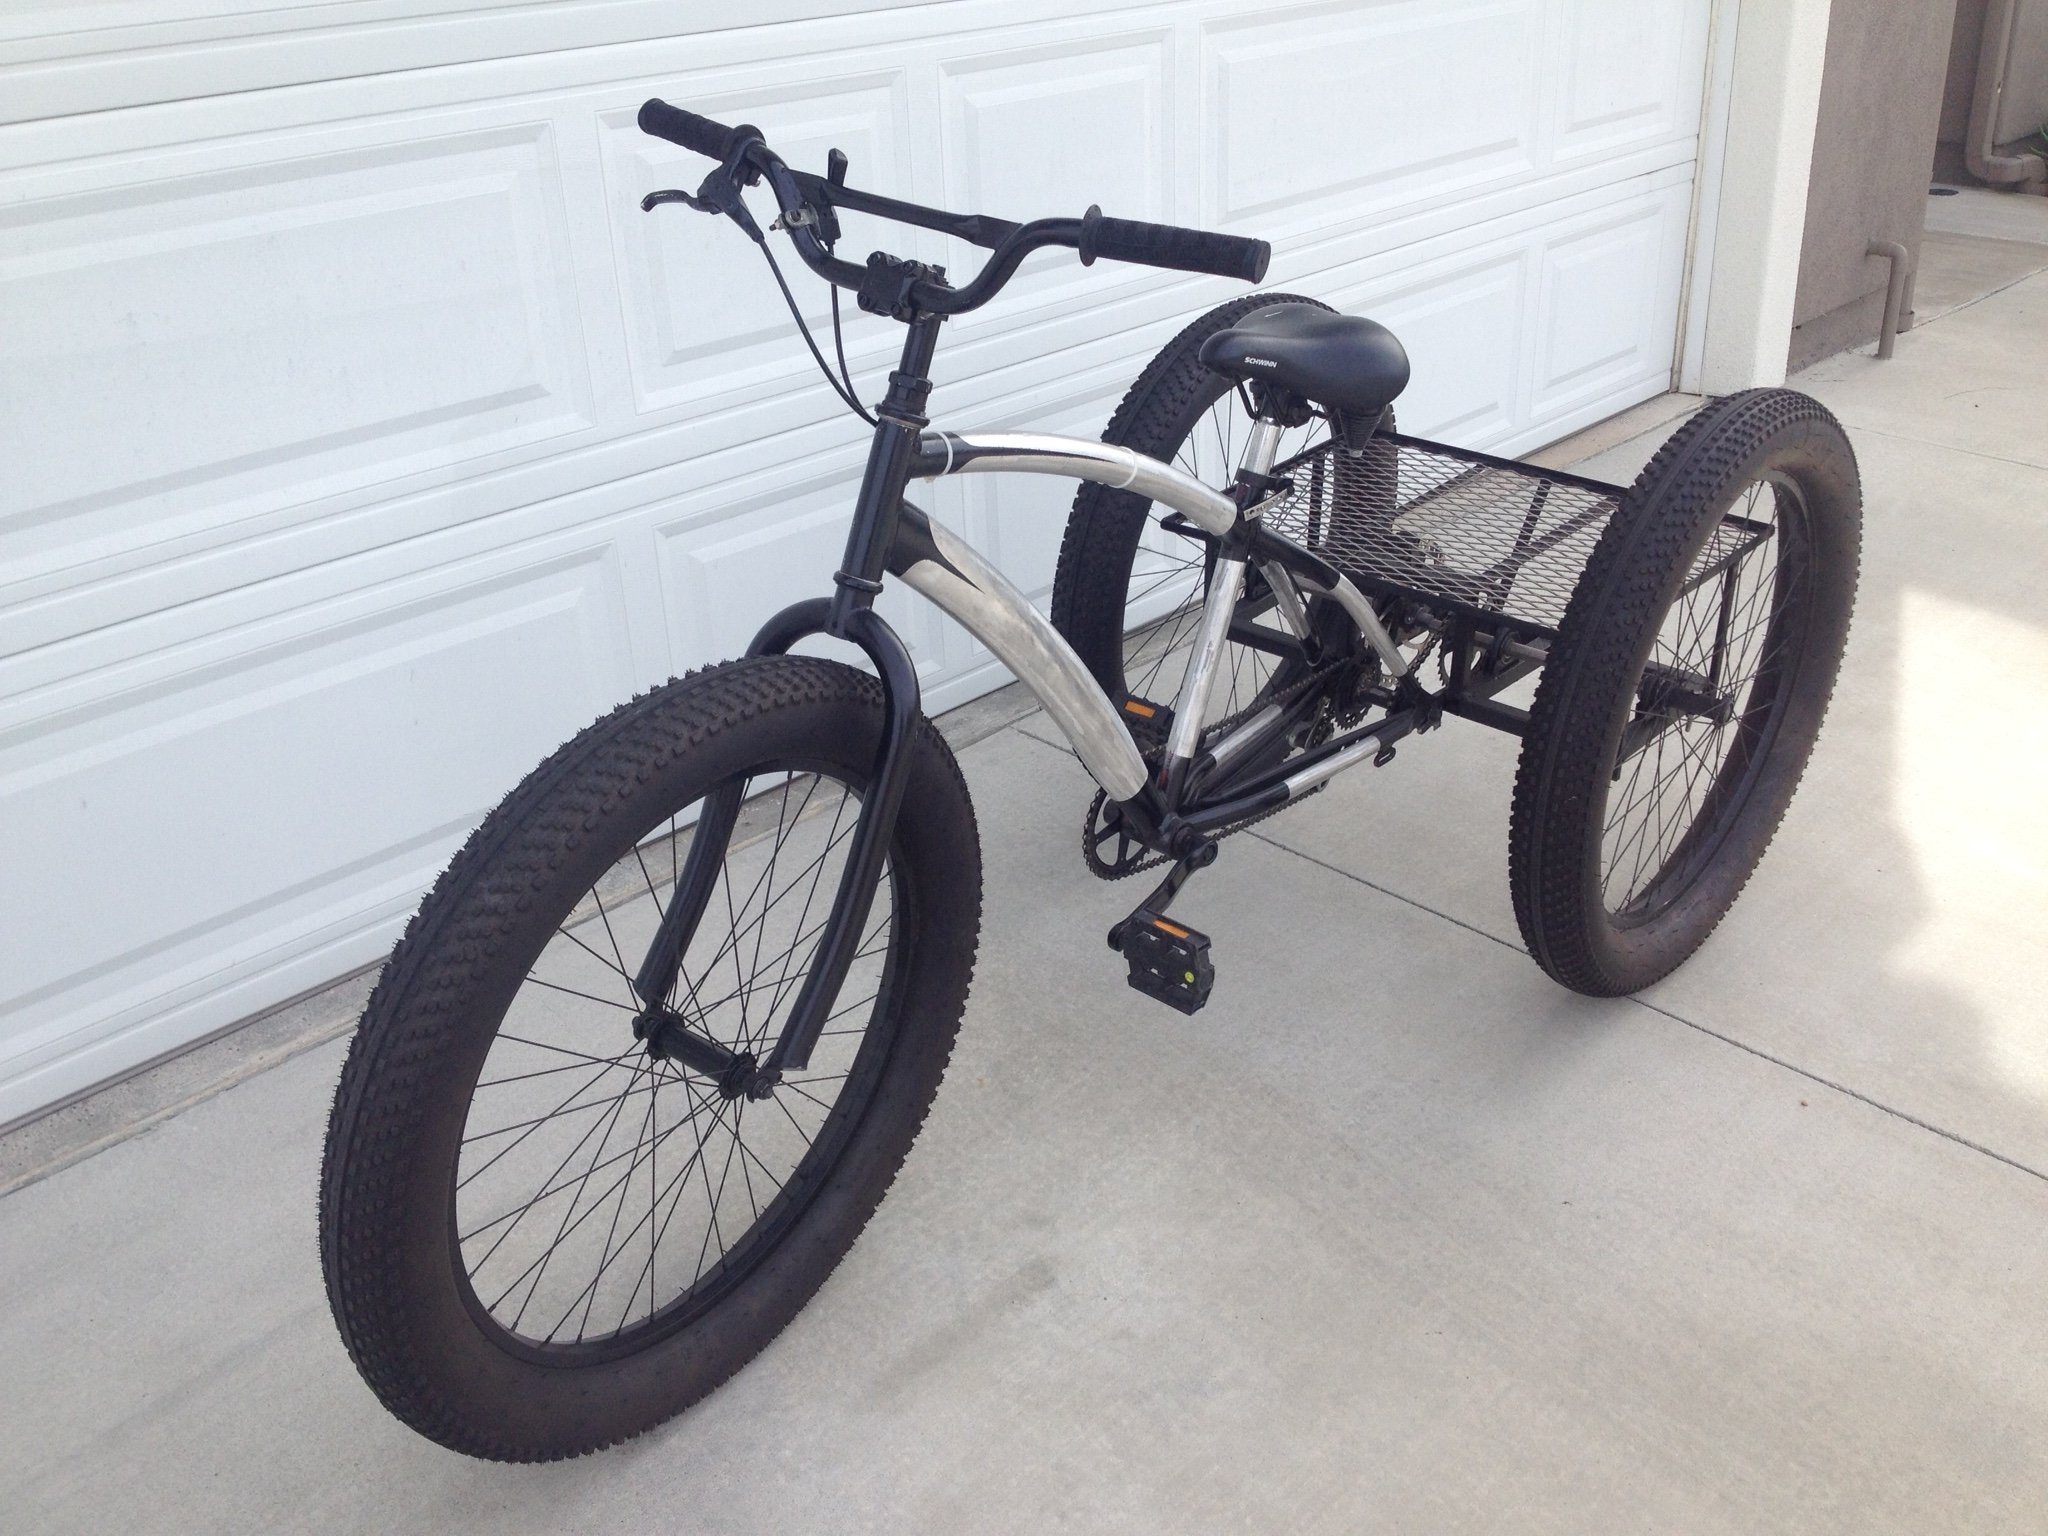 Bikes For Heavy People Trike IMG JPG jpeg